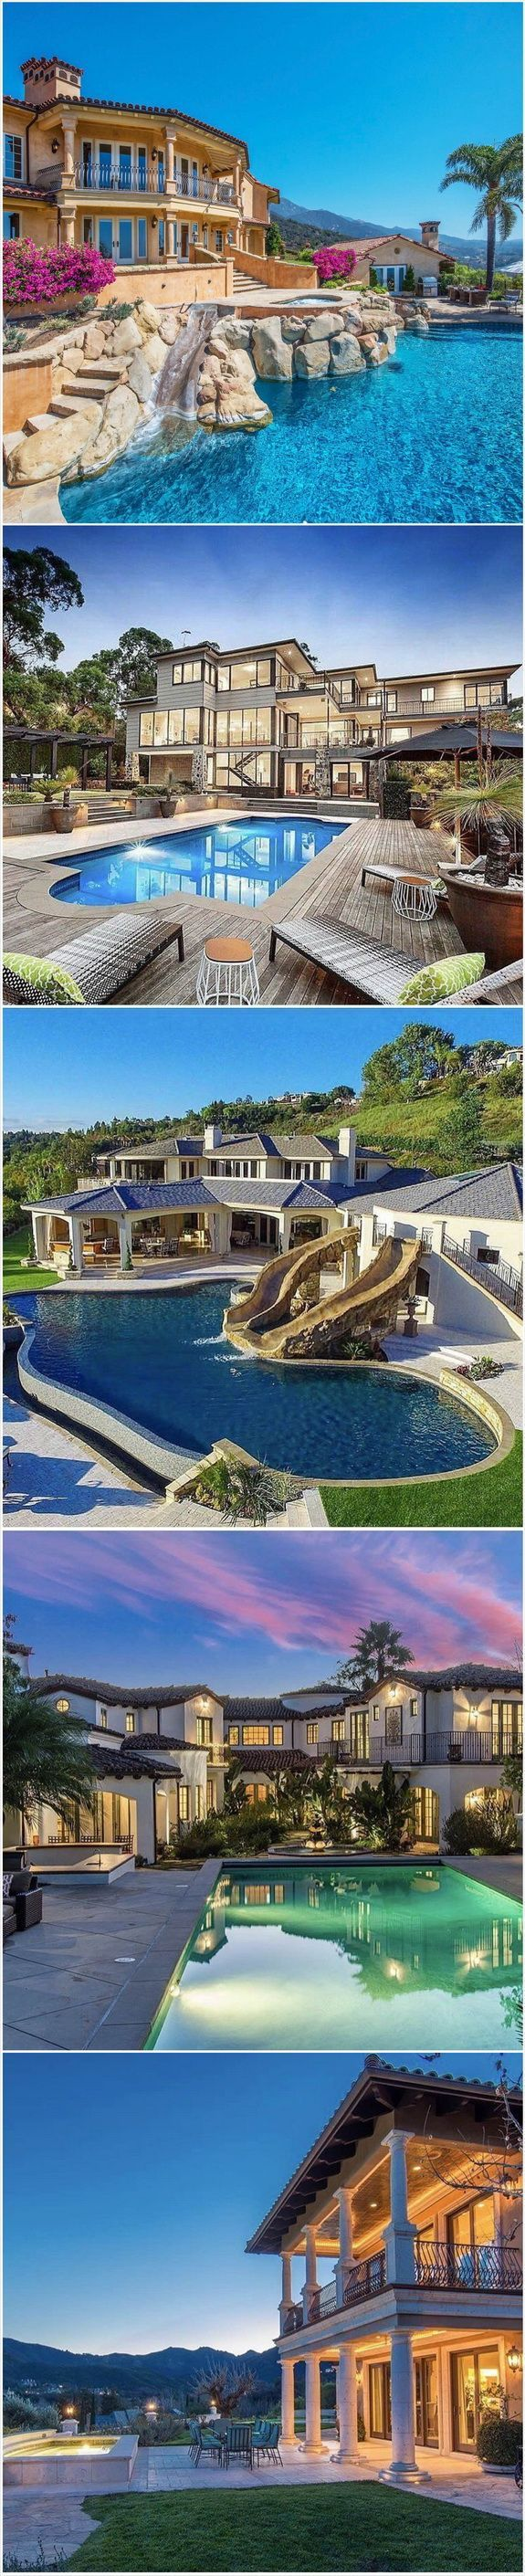 81 stunning mansion dreams homes - Big Mansions With Pools On The Beach